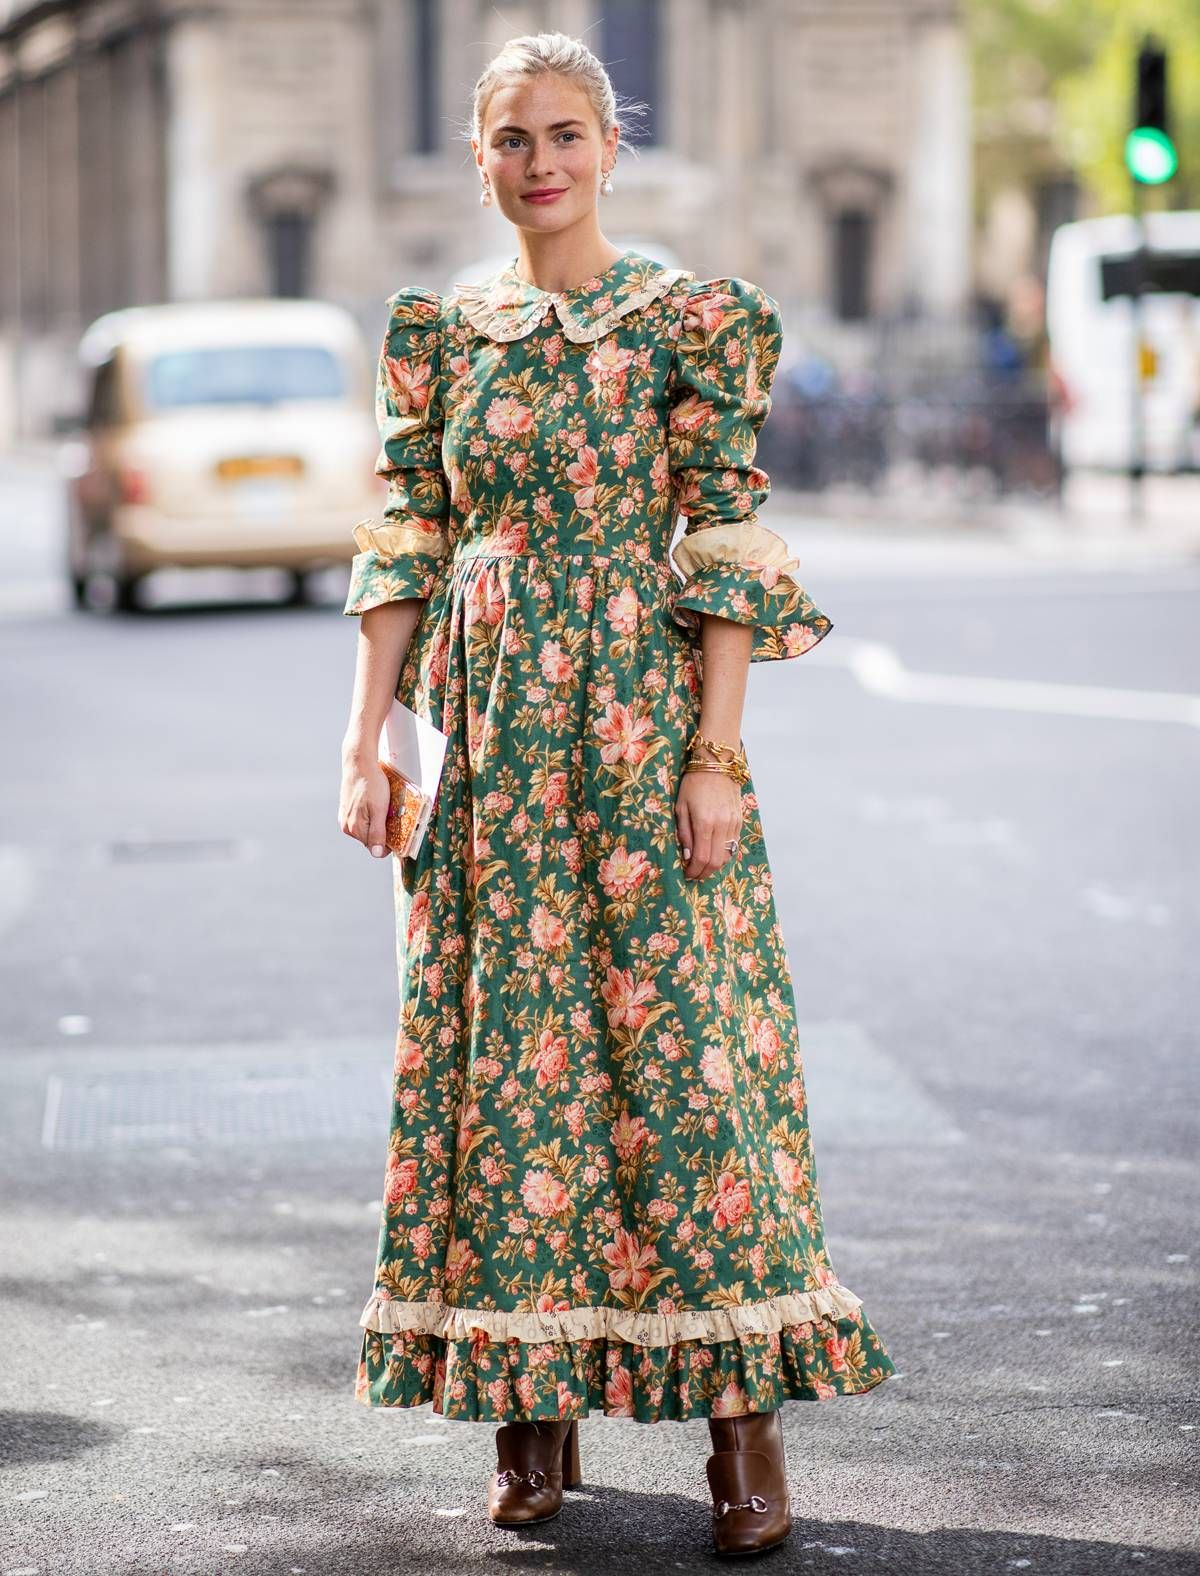 bb1b059beb3 9 Street Style Trends That Will Dominate Your Instagram Feeds in ...